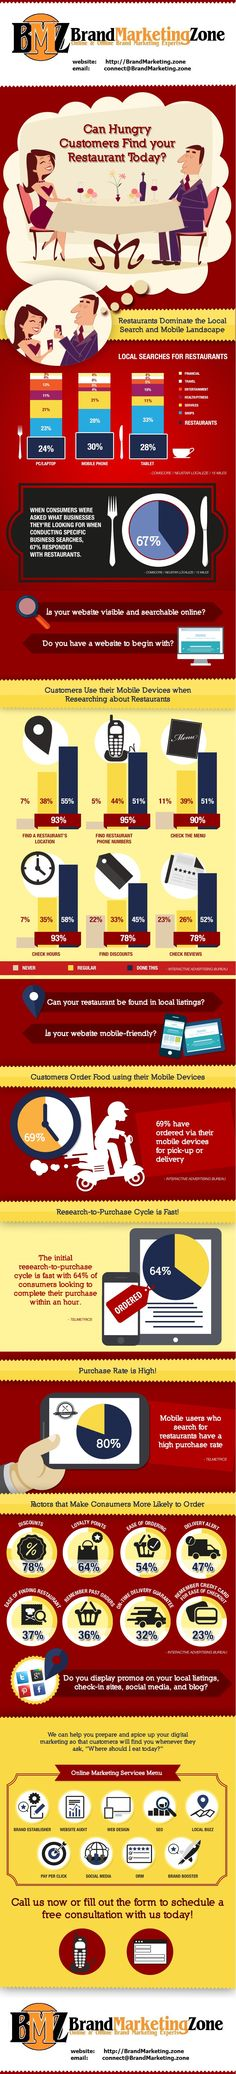 Here's what you Need to Know about Online Marketing for Restaurants: - Restaurants Dominate the Local Search  - restaurants need a mobile responsive website,mobile usage has been continuously growing - Customers are using their mobile devices to order food from restaurants - Customers look at various features before contacting and ordering from your restaurant.